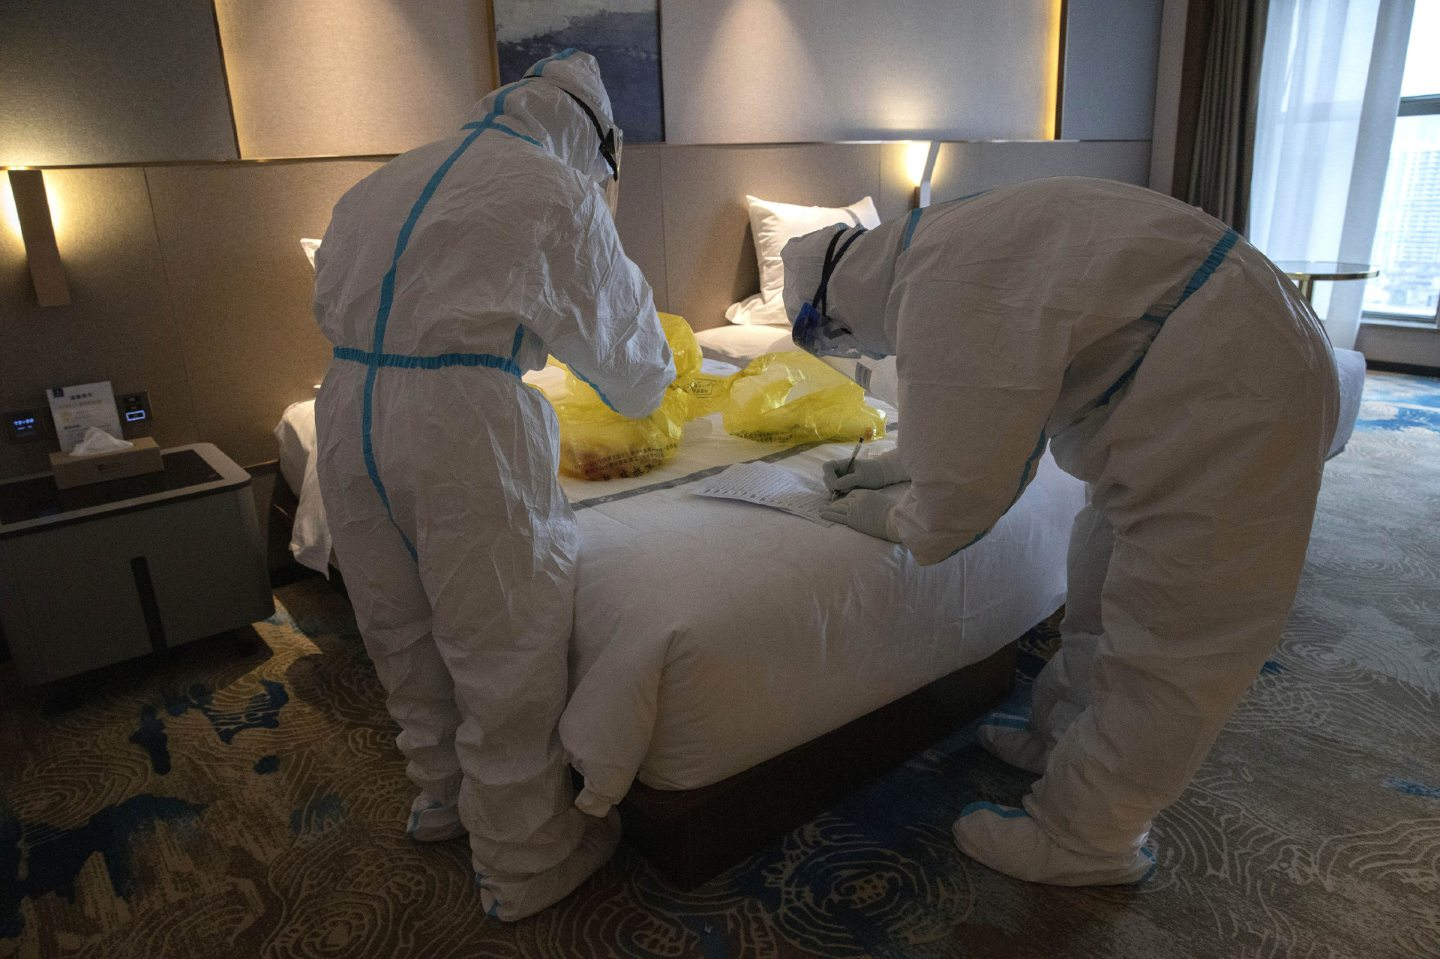 Workers in protective suits collect COVID-19 samples to test at a quarantine hotel in Wuhan in central China's Hubei province